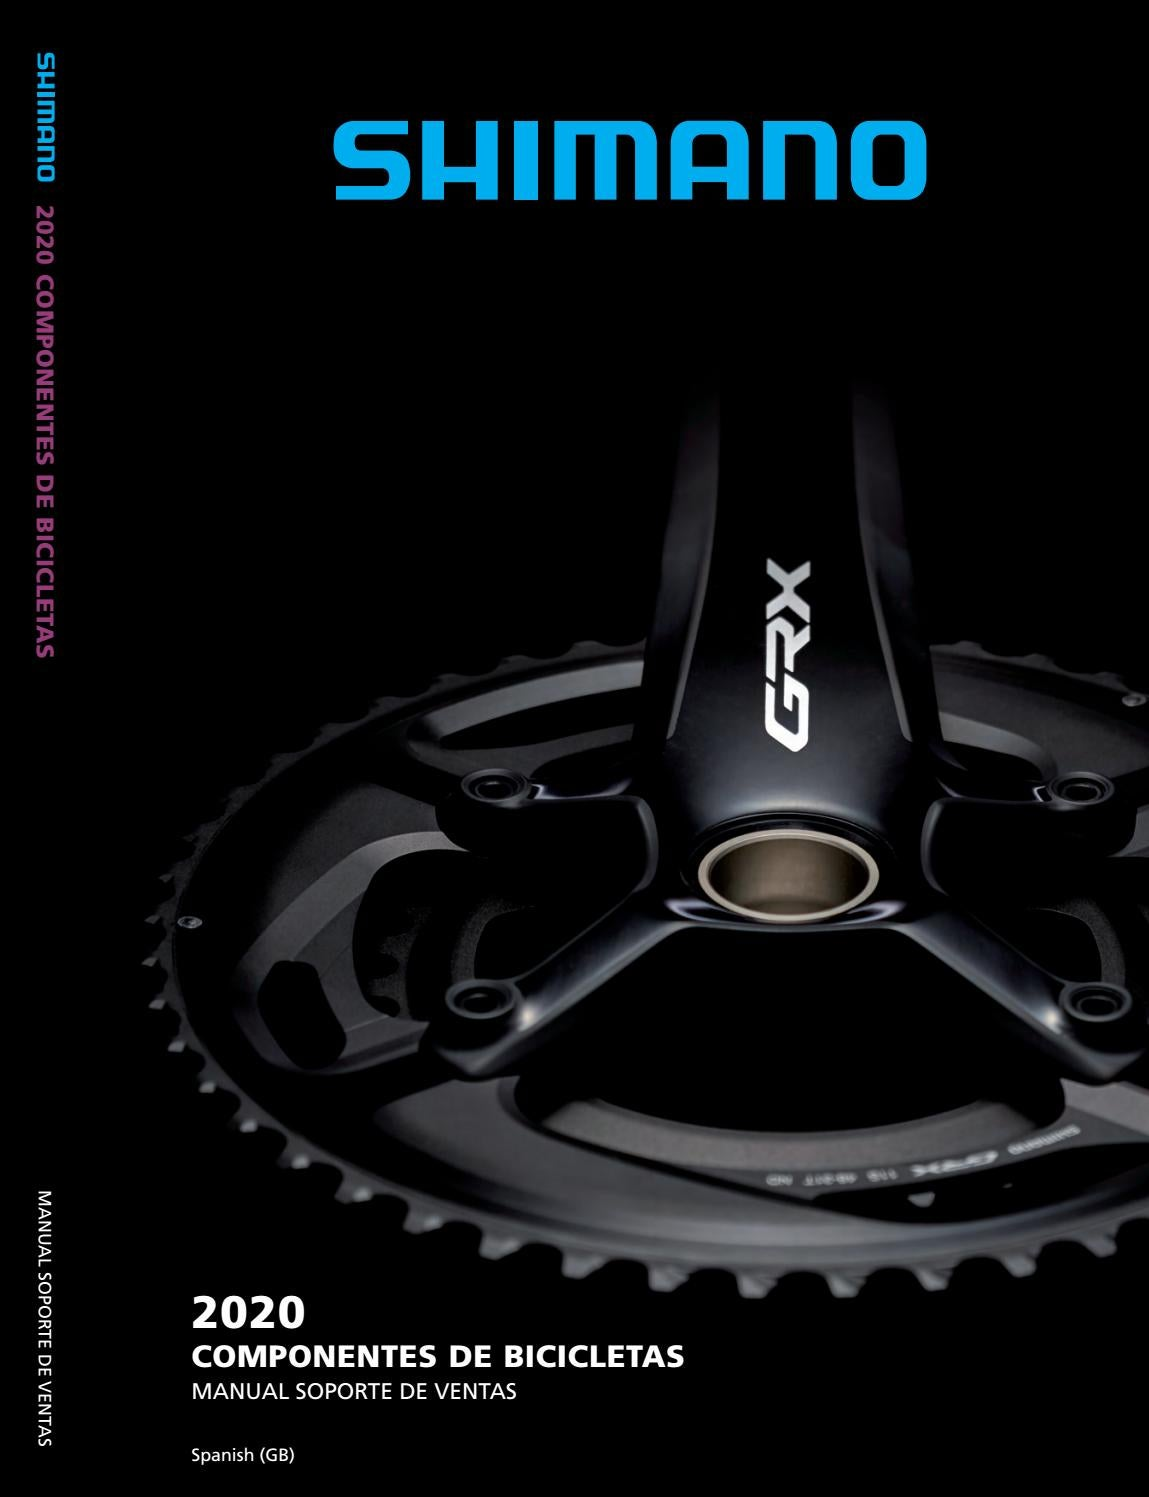 Shimano Deore XTR sm-rt99-l ice-Tech centerlock disco de freno 203mm-nuevo